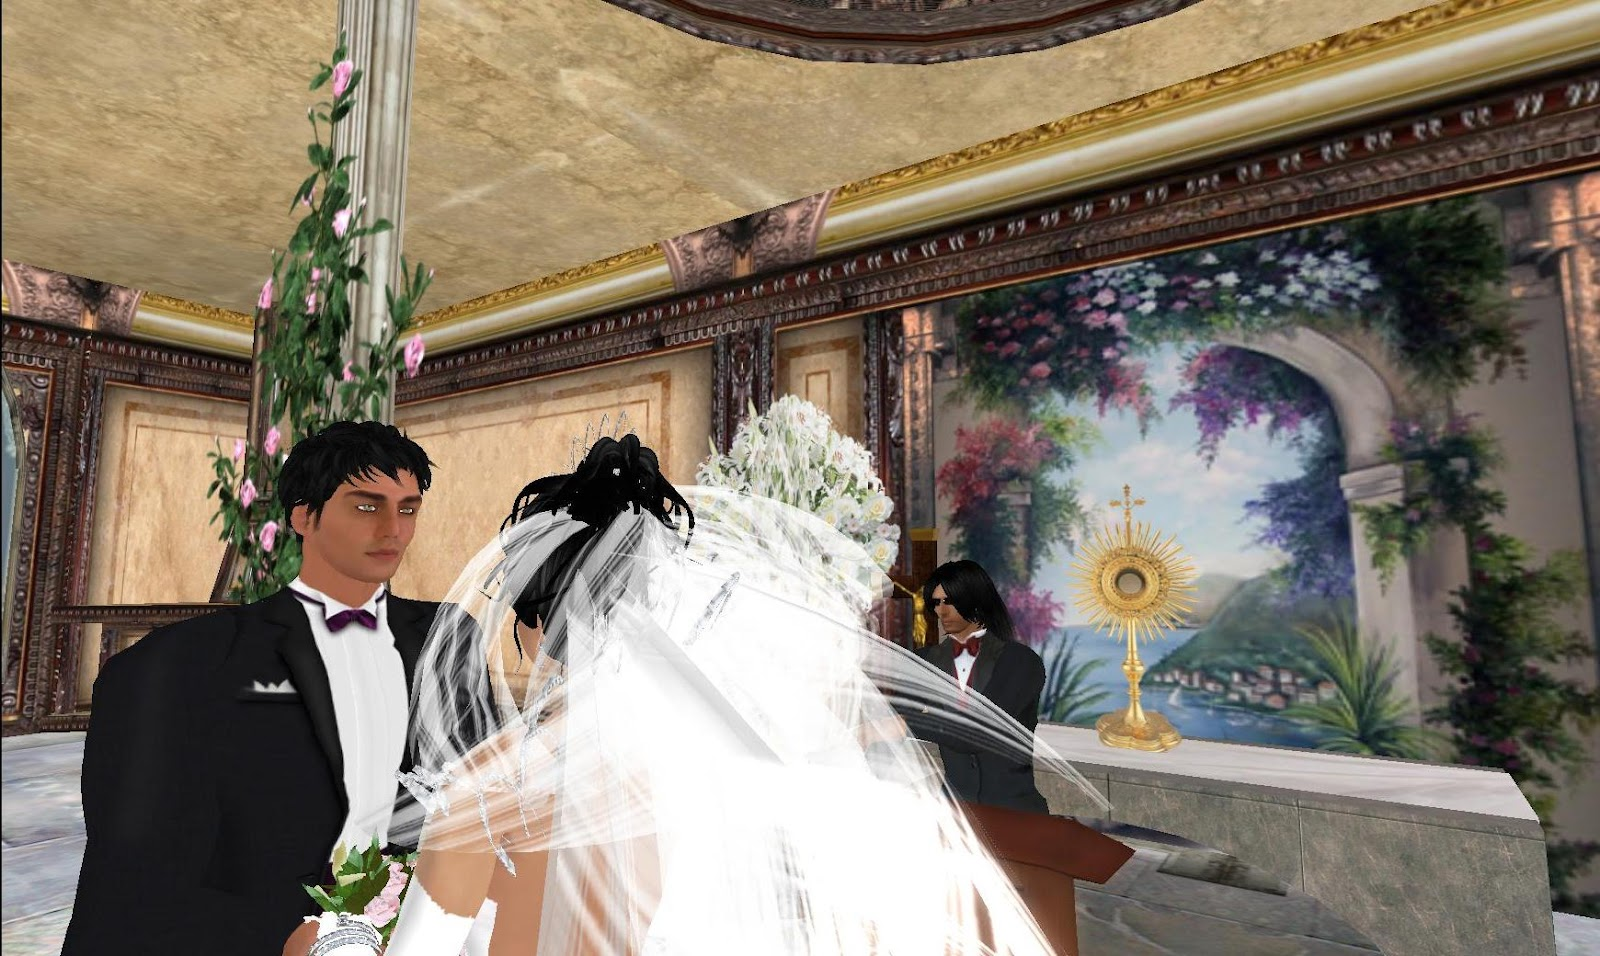 Some cool wedding plan images: Last minute Wedding! : rafee & xavier wedding